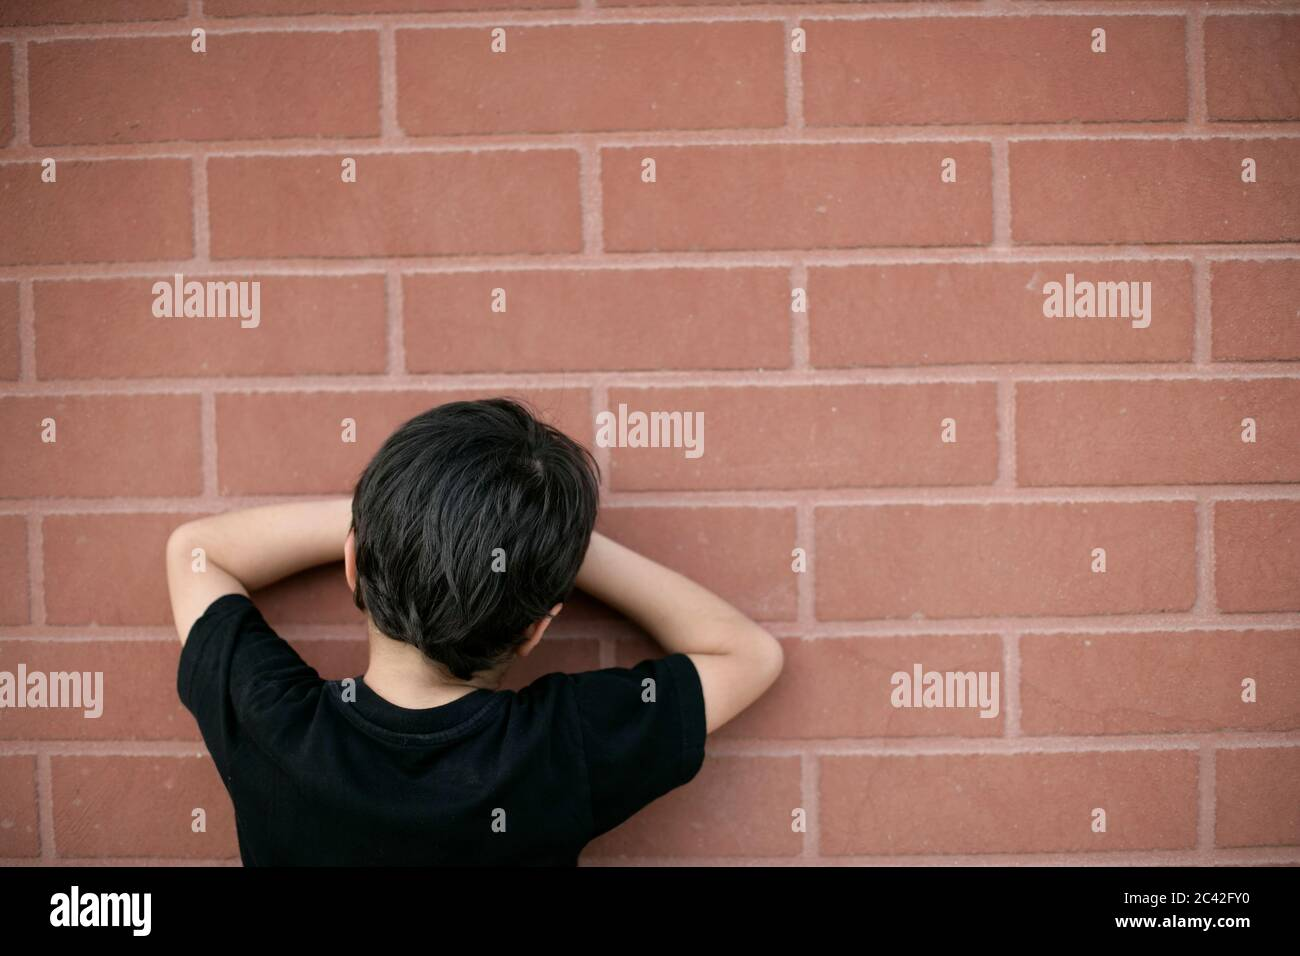 Little boy counts on the wall for hiding - youth - childhood Stock Photo